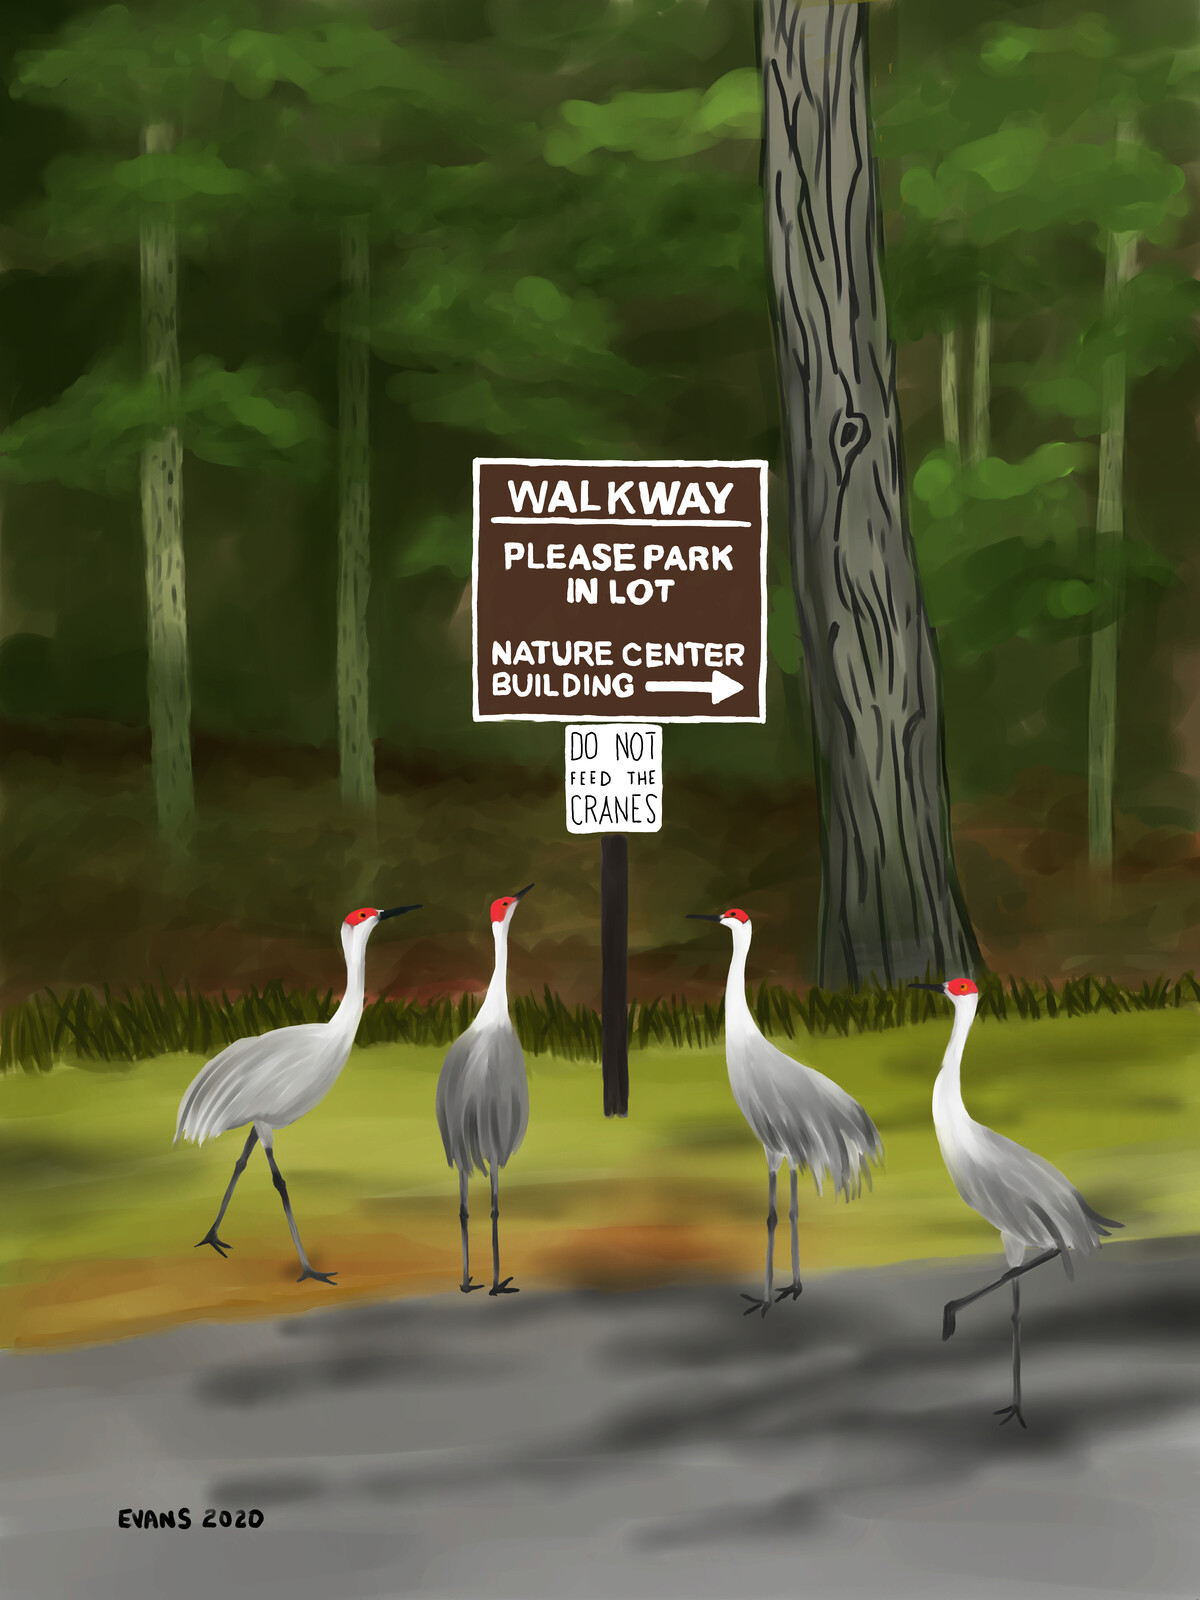 Do Not Feed the Cranes